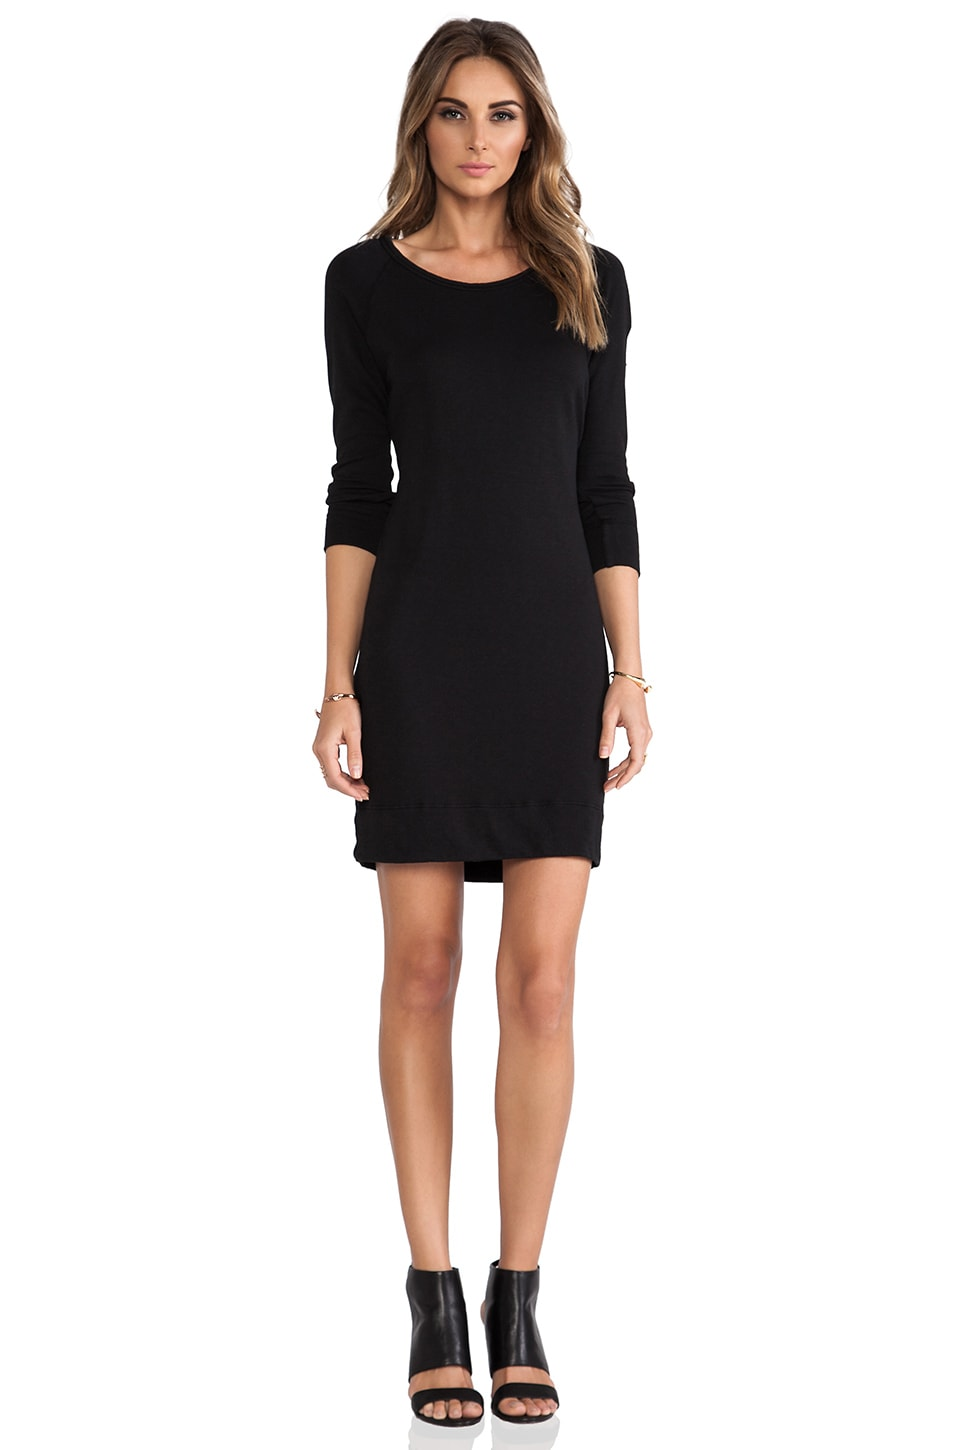 James Perse Raglan Sweatshirt Dress in Black